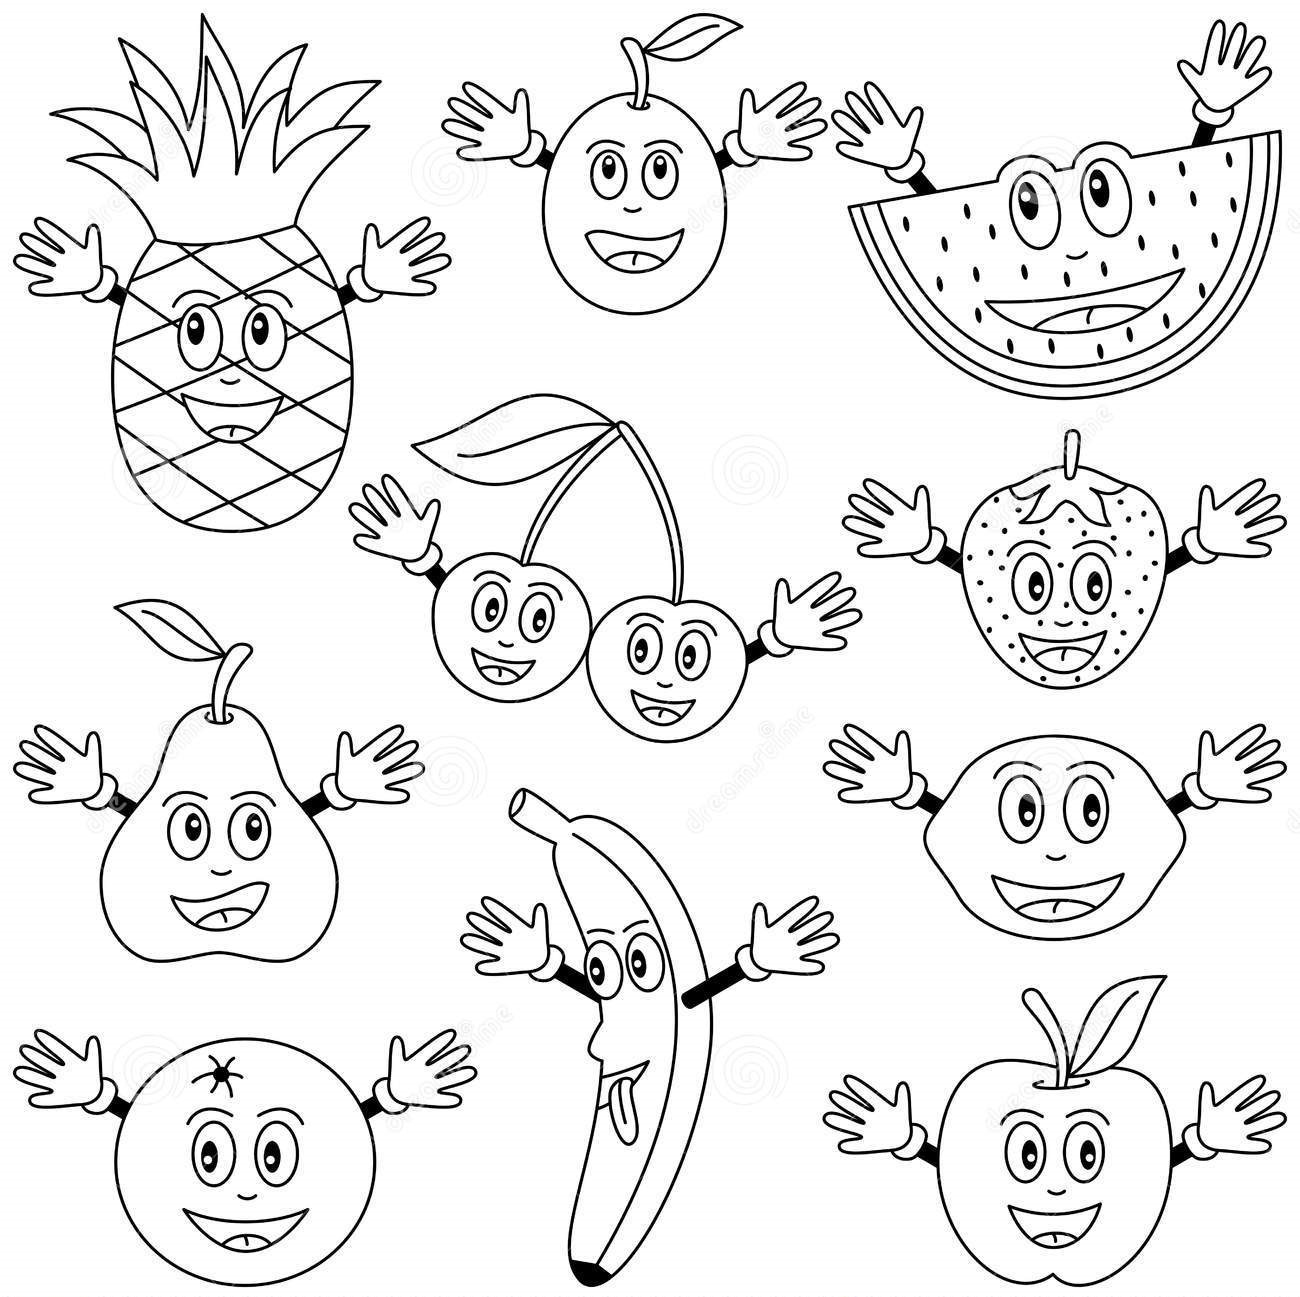 cartoon fruit coloring pages cartoons drawing for kids at getdrawings free download cartoon coloring fruit pages